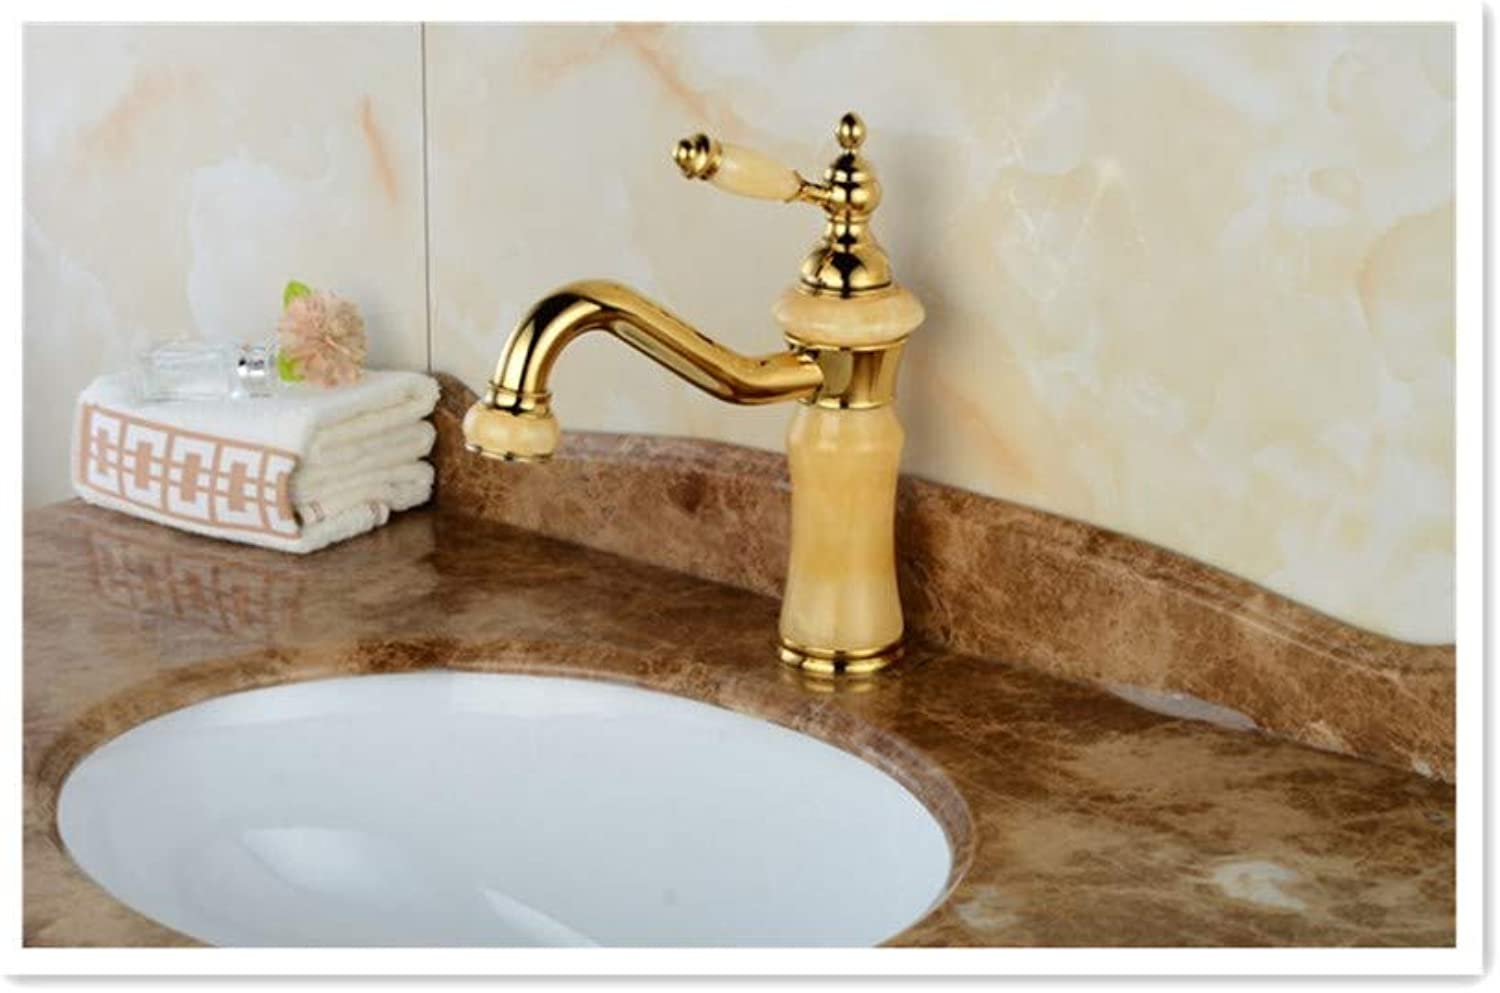 BBQBQQY golden Topaz marble faucet in the lower basin of antique jade faucet